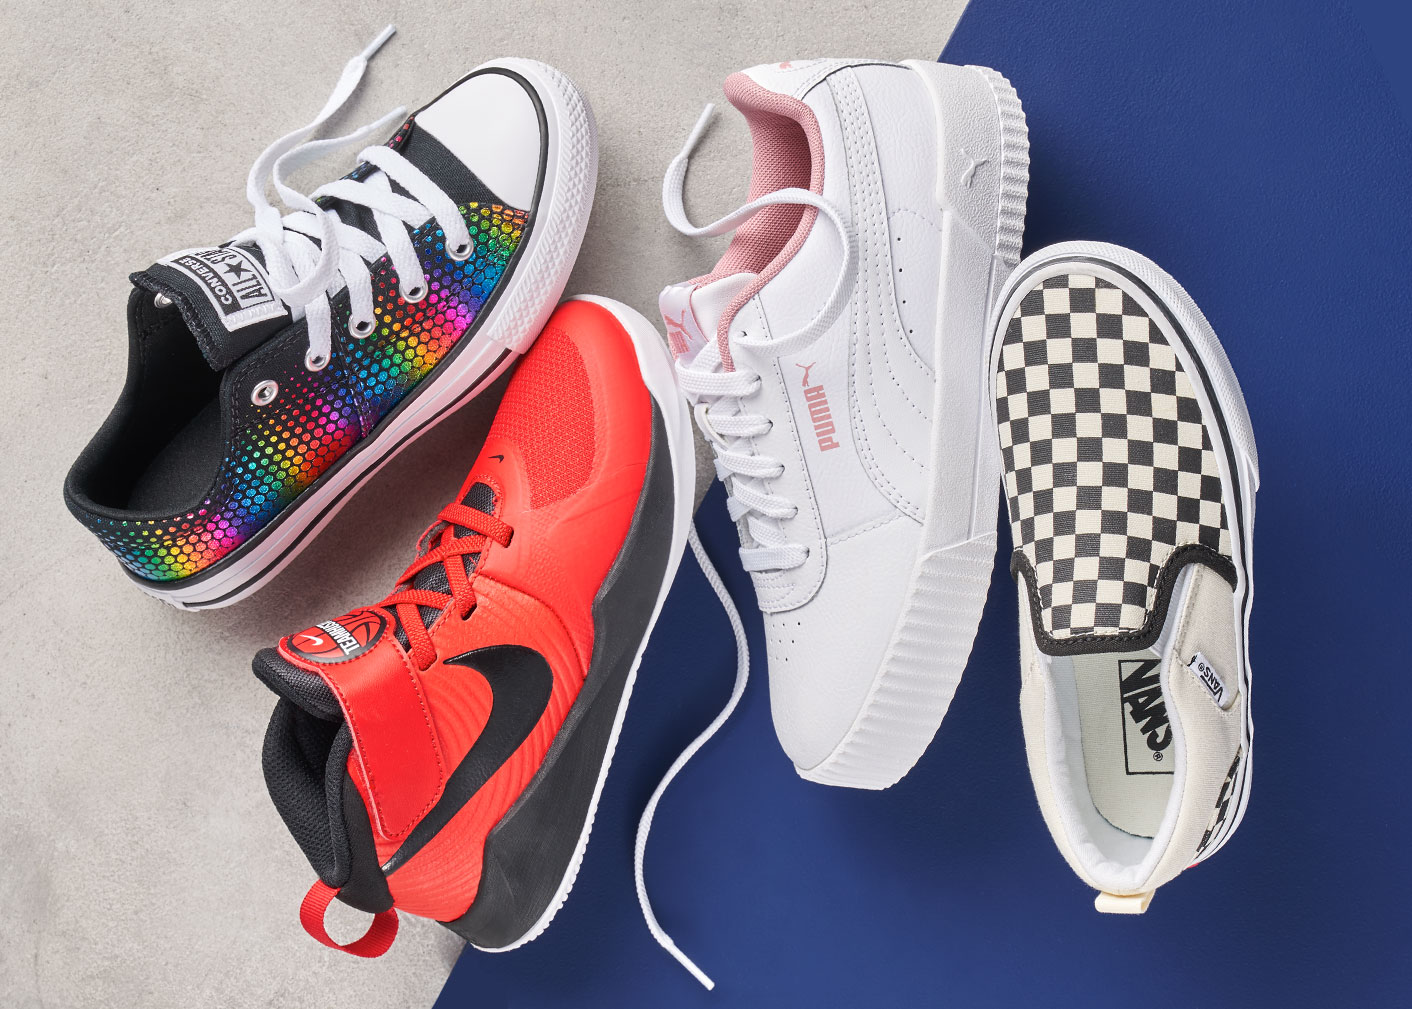 assorted converse, nike, puma and vans sneakers